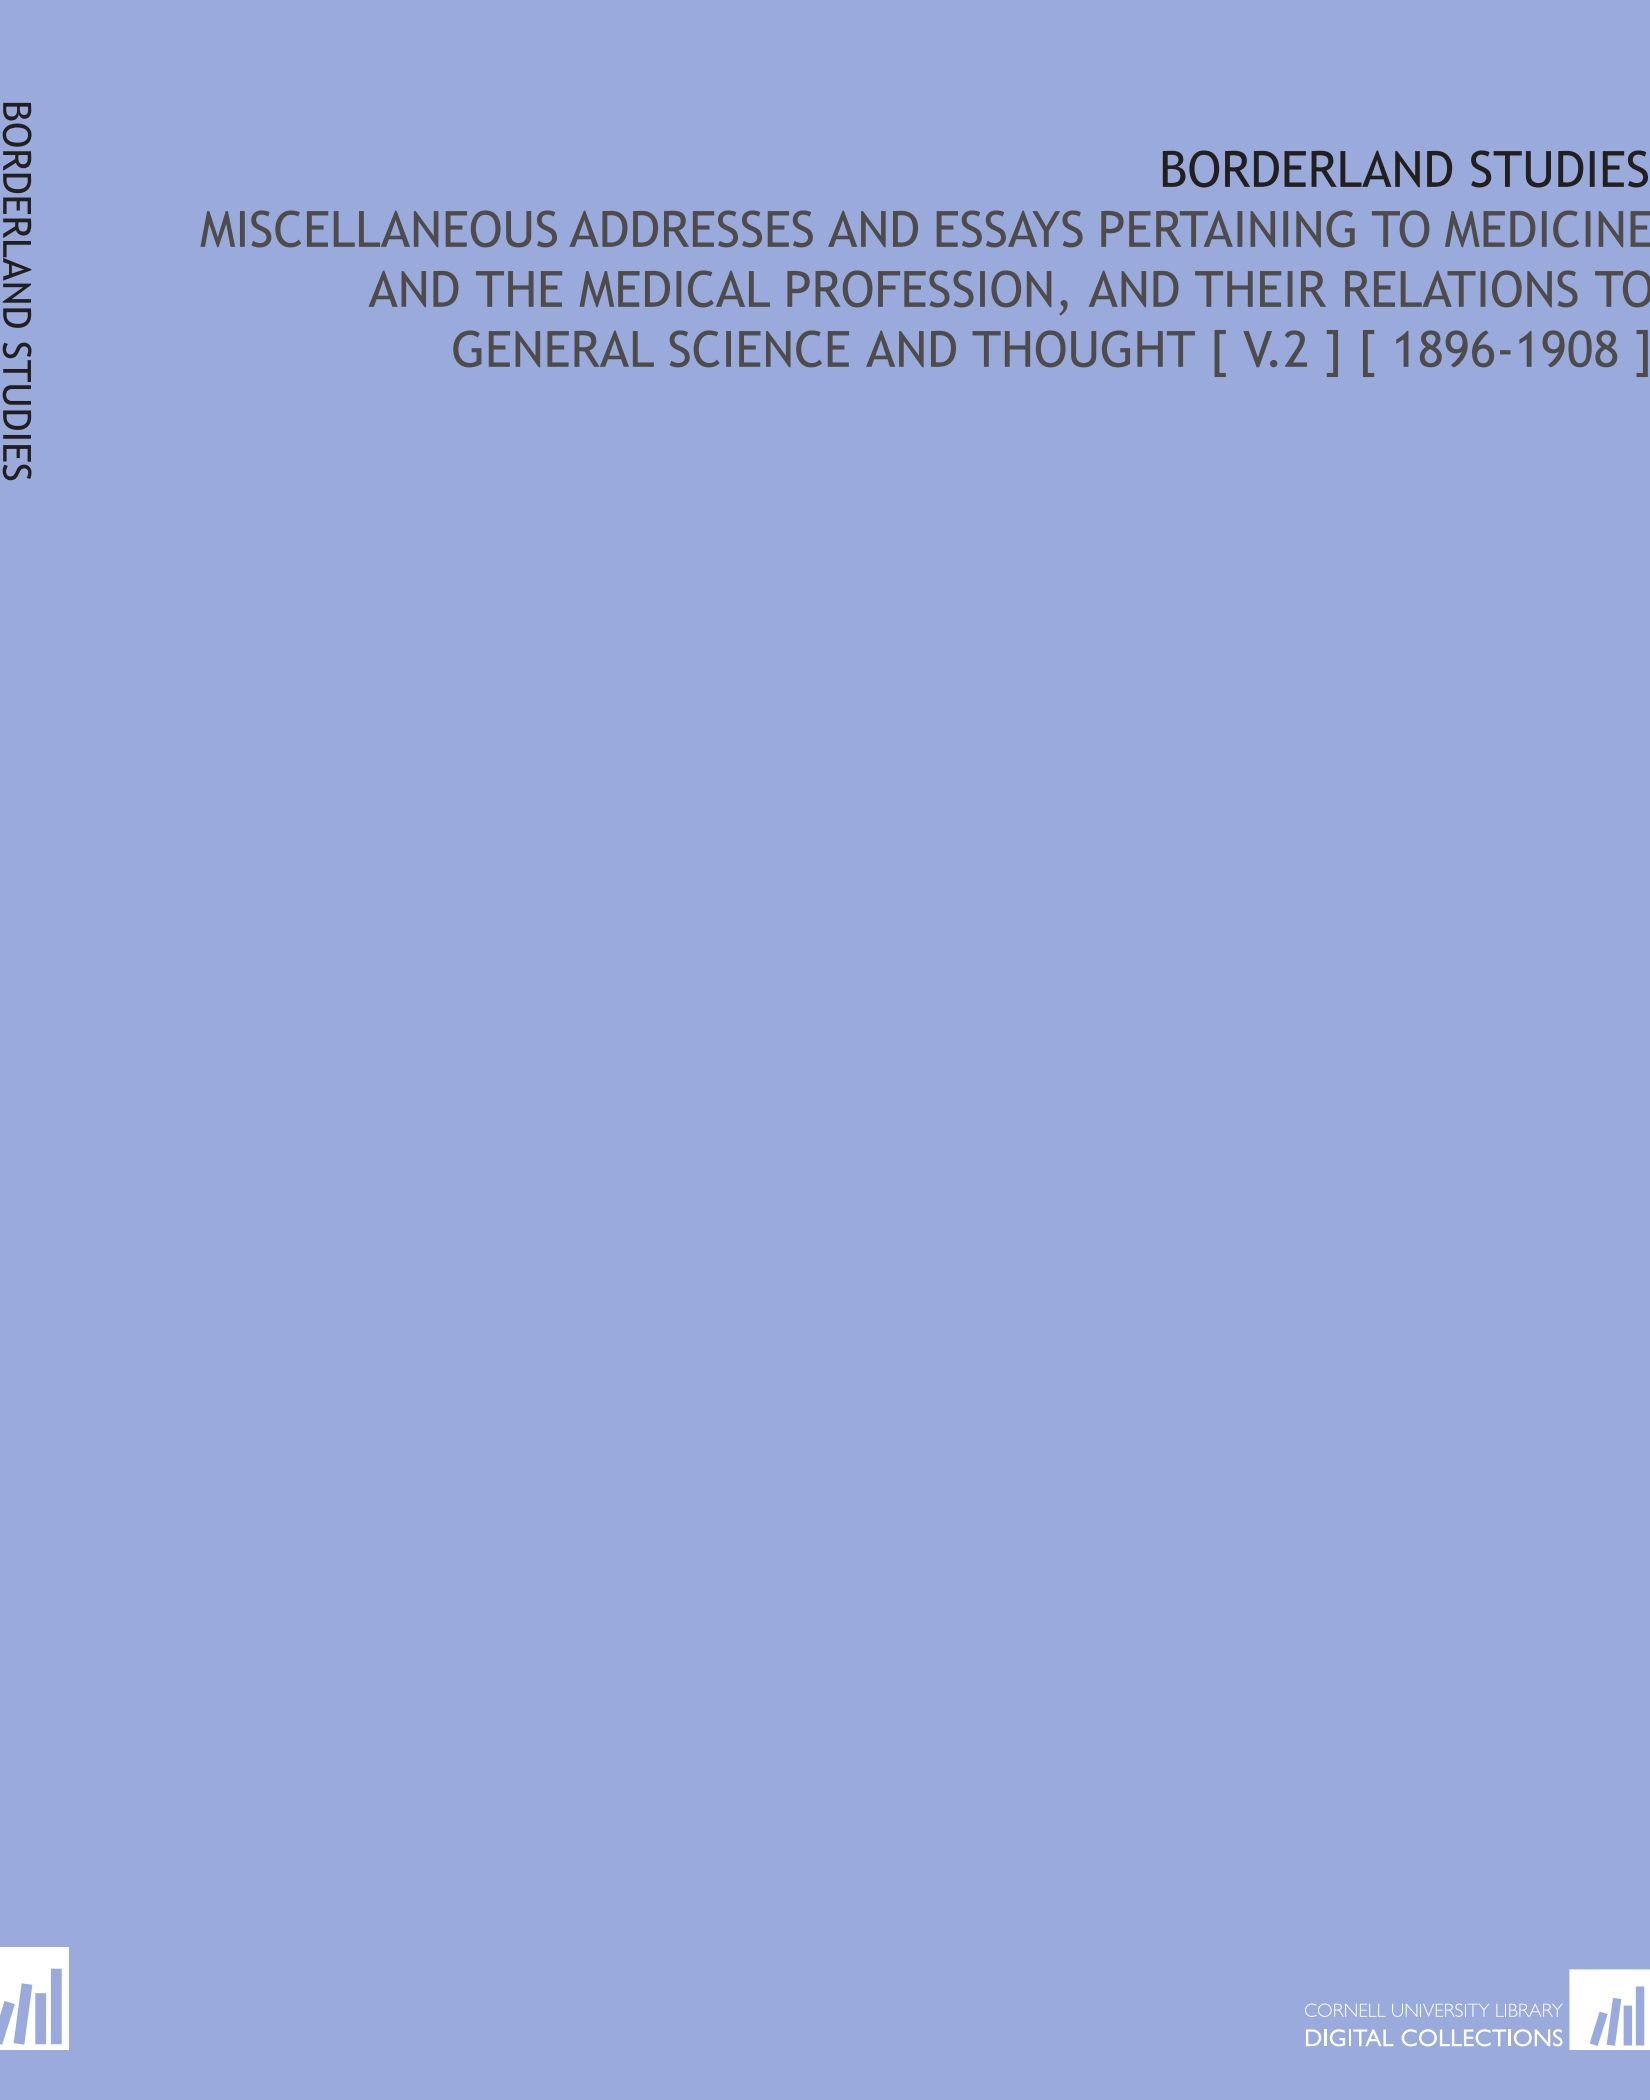 Download Borderland Studies: Miscellaneous Addresses and Essays Pertaining to Medicine and the Medical Profession, and Their Relations to General Science and Thought [ V.2 ] [ 1896-1908 ] ebook